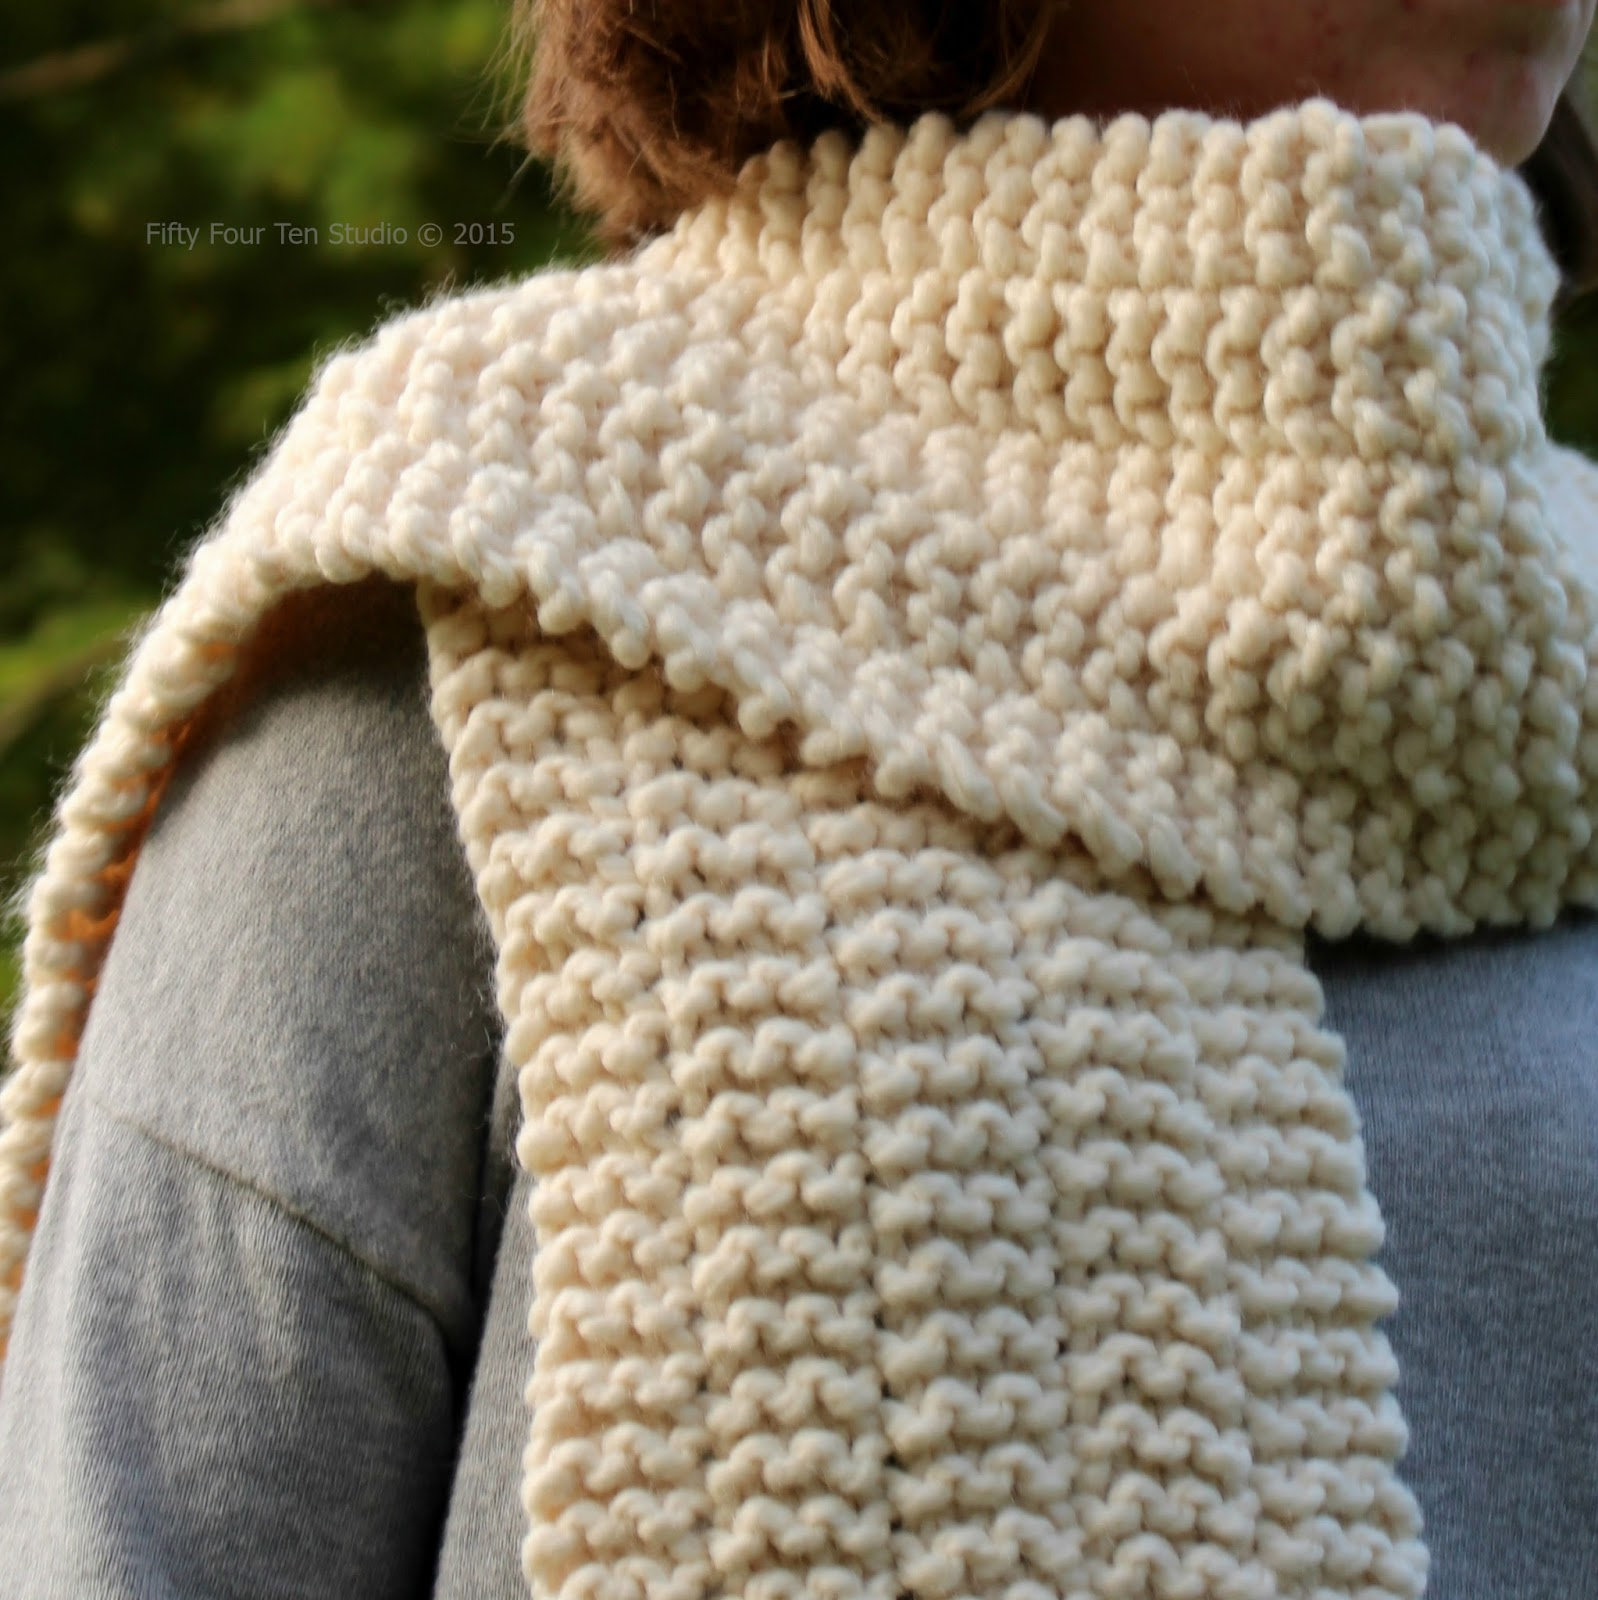 Knitting Pattern For Yarn Over Scarf : Fifty Four Ten Studio: New Easy Scarf Knitting Pattern ...